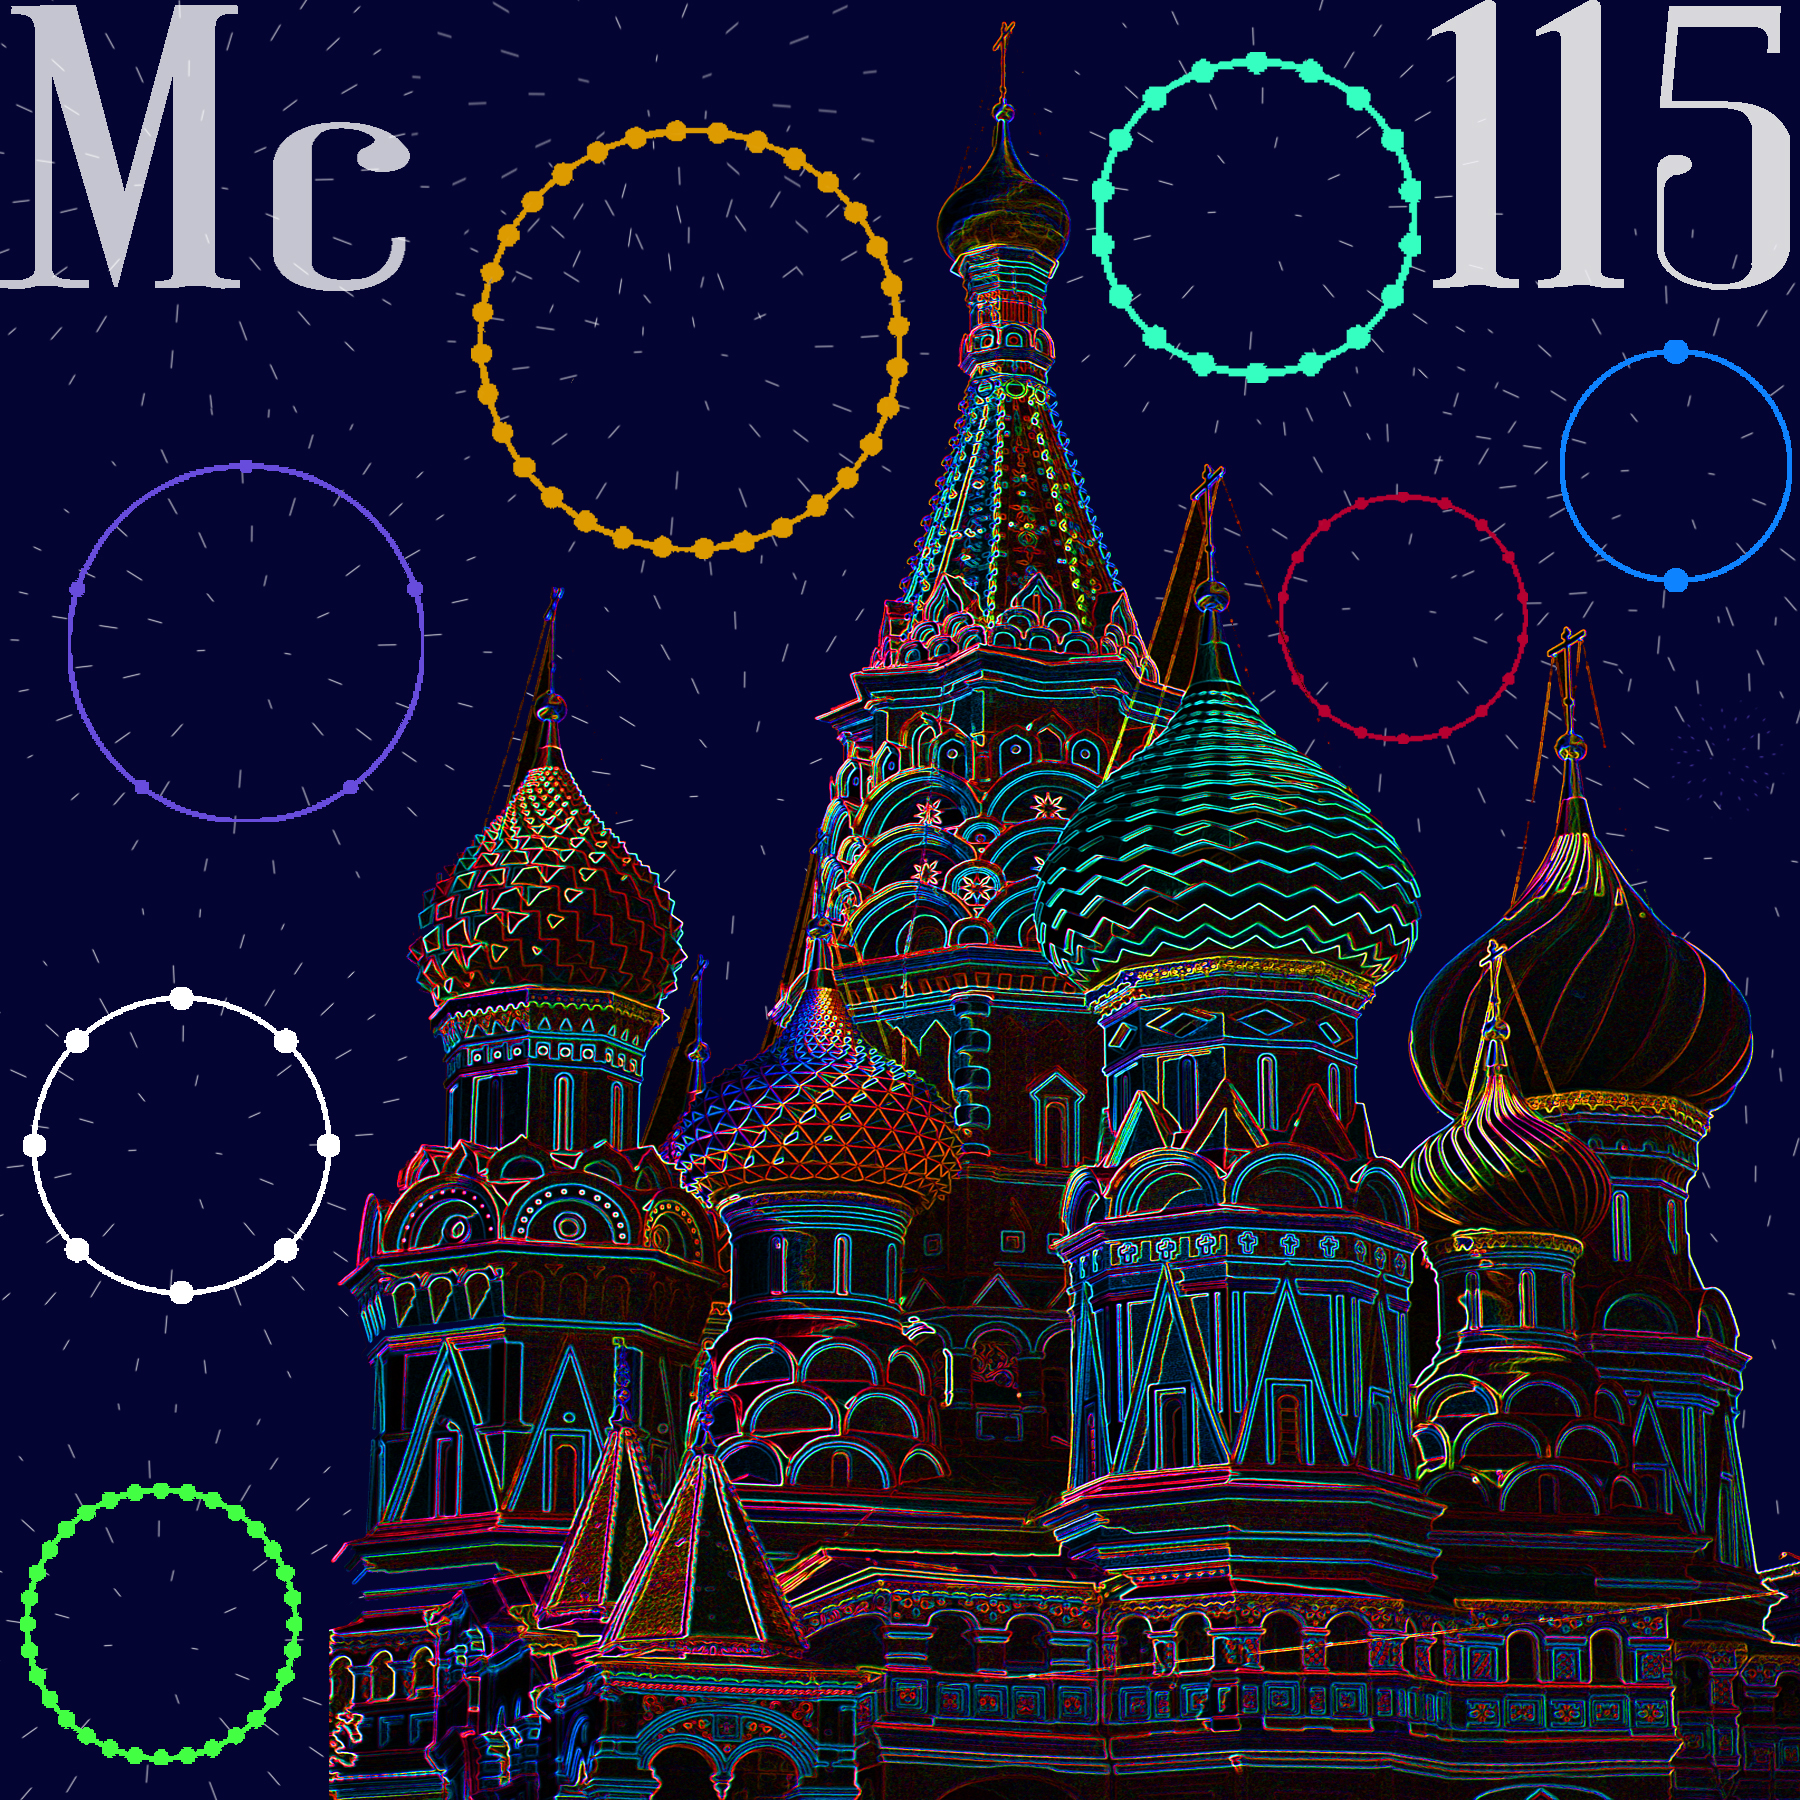 elemental tile for moscovium made by digitally highlighting the outline St. Basil's Cathedral in Moscow.